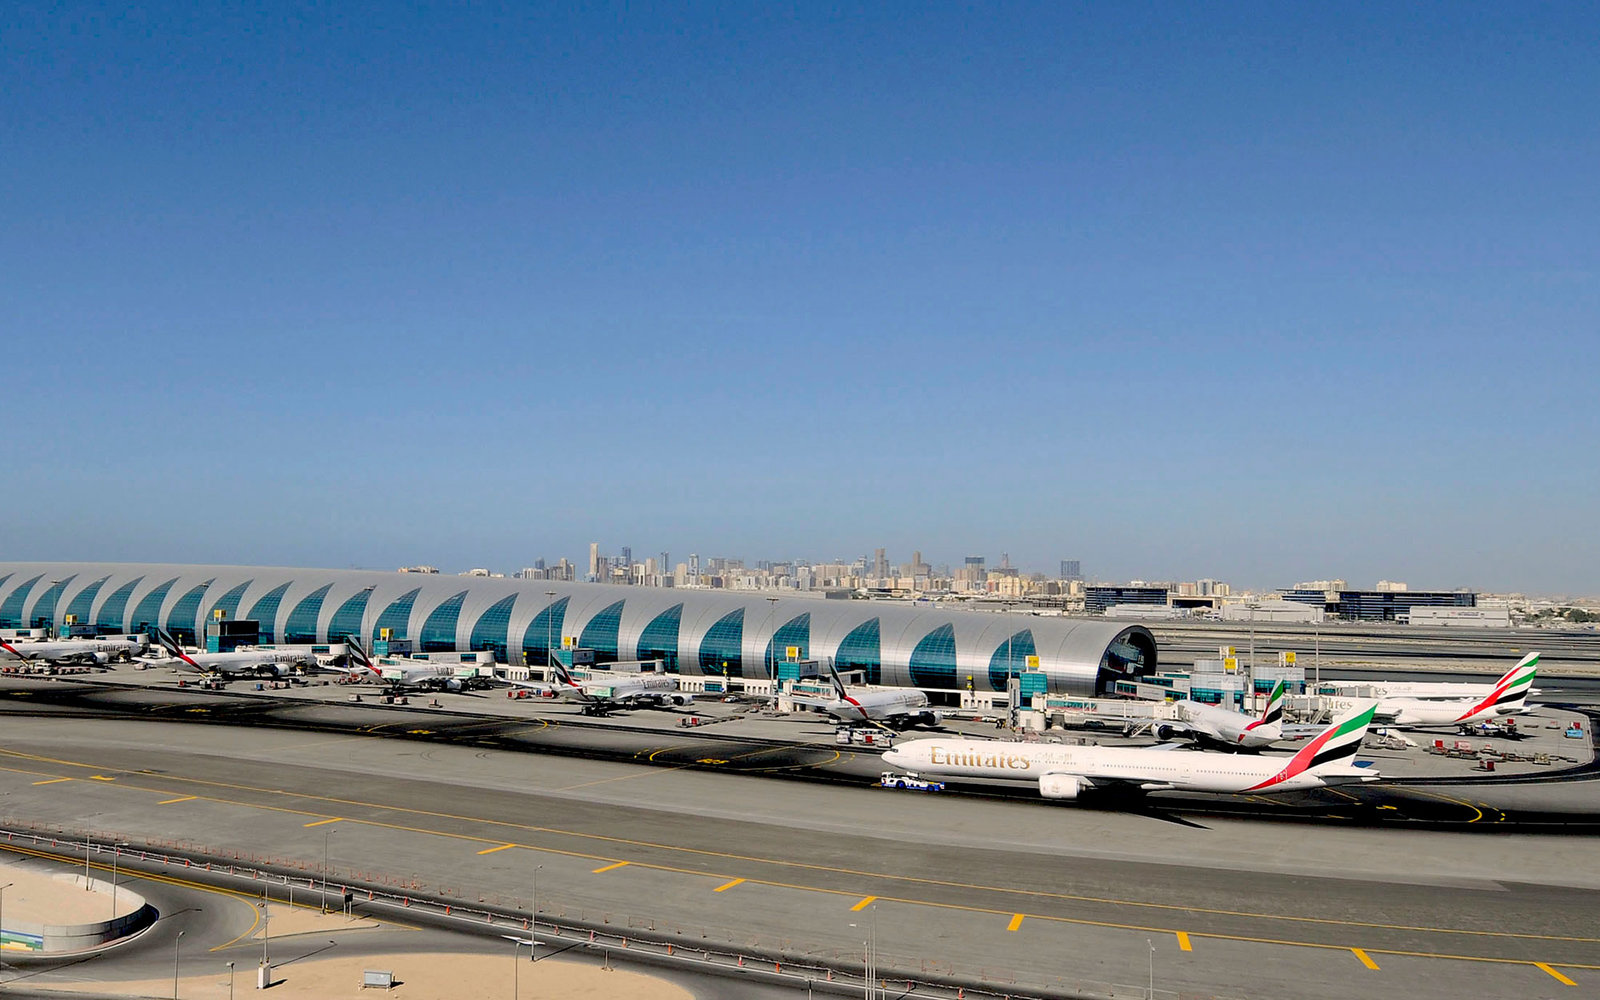 An Emirates airplane taxis down the runway at the Dubai International Airport in Dubai, United Arab Emirates, on Tuesday, Nov. 24, 2009. Dubai, whose government and state-owned companies borrowed $80 billion to fund an economic boom, raised $5 billion by